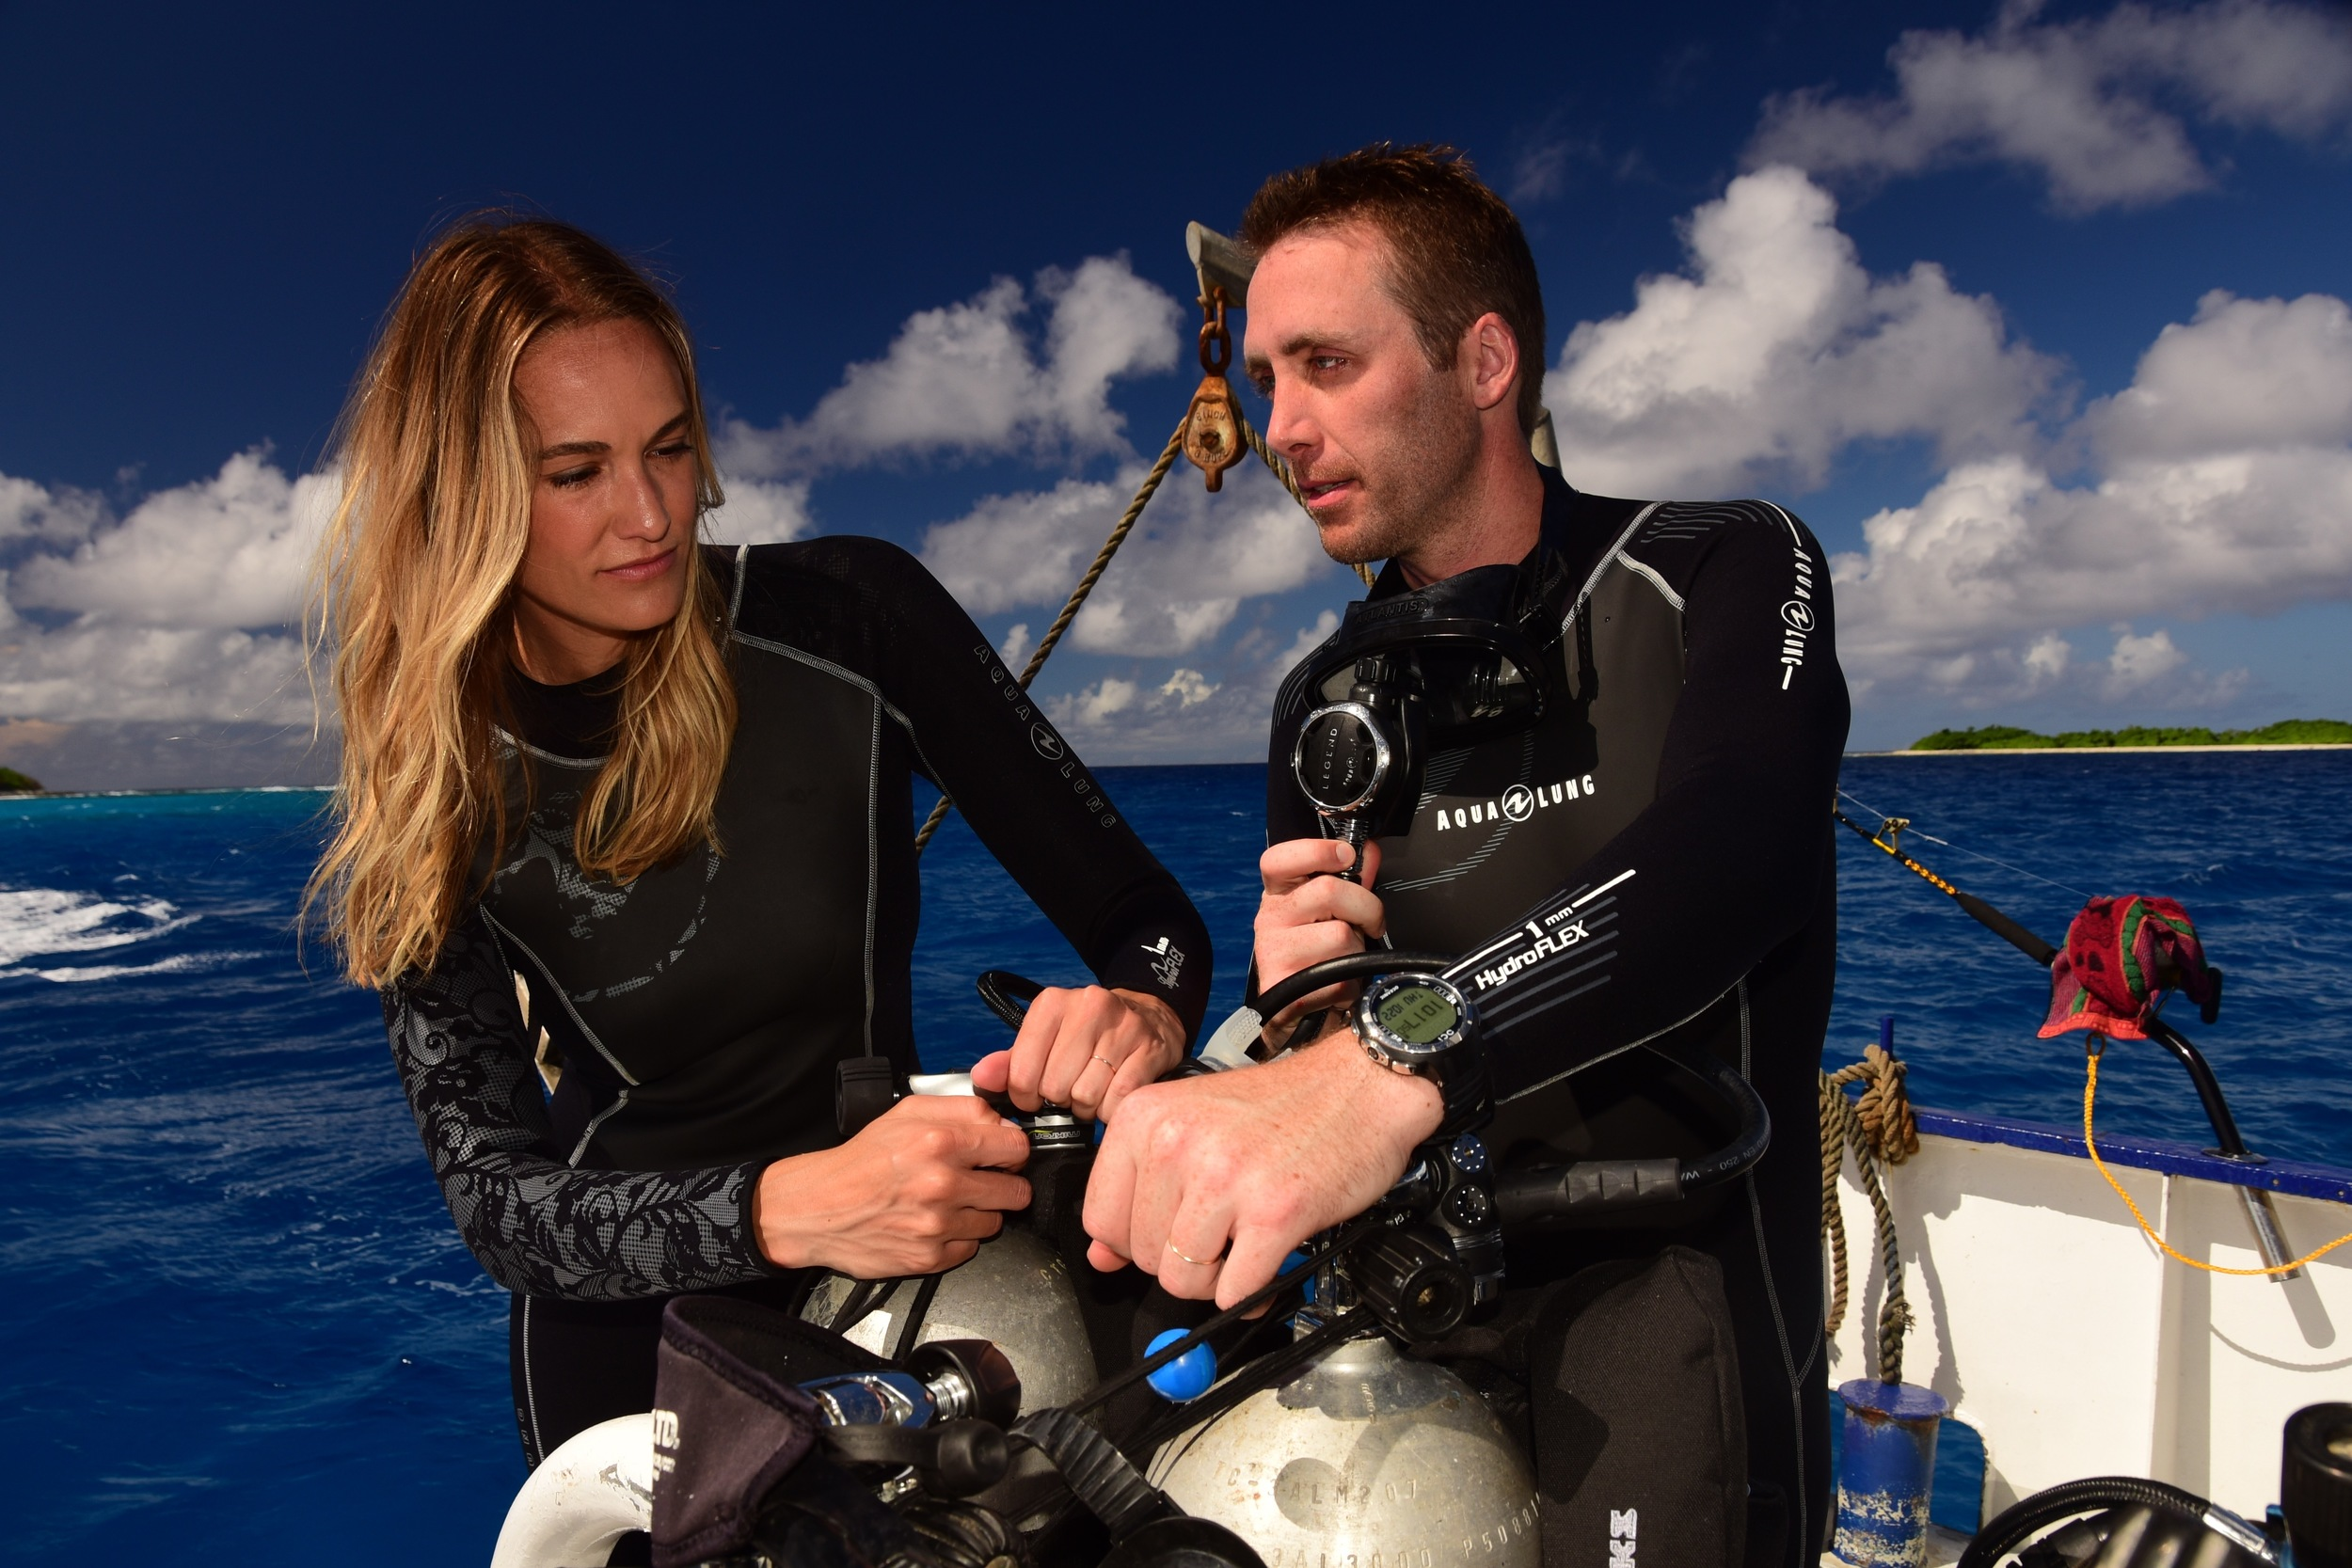 Philippe and Ashlan on expedition in Marshall Islands